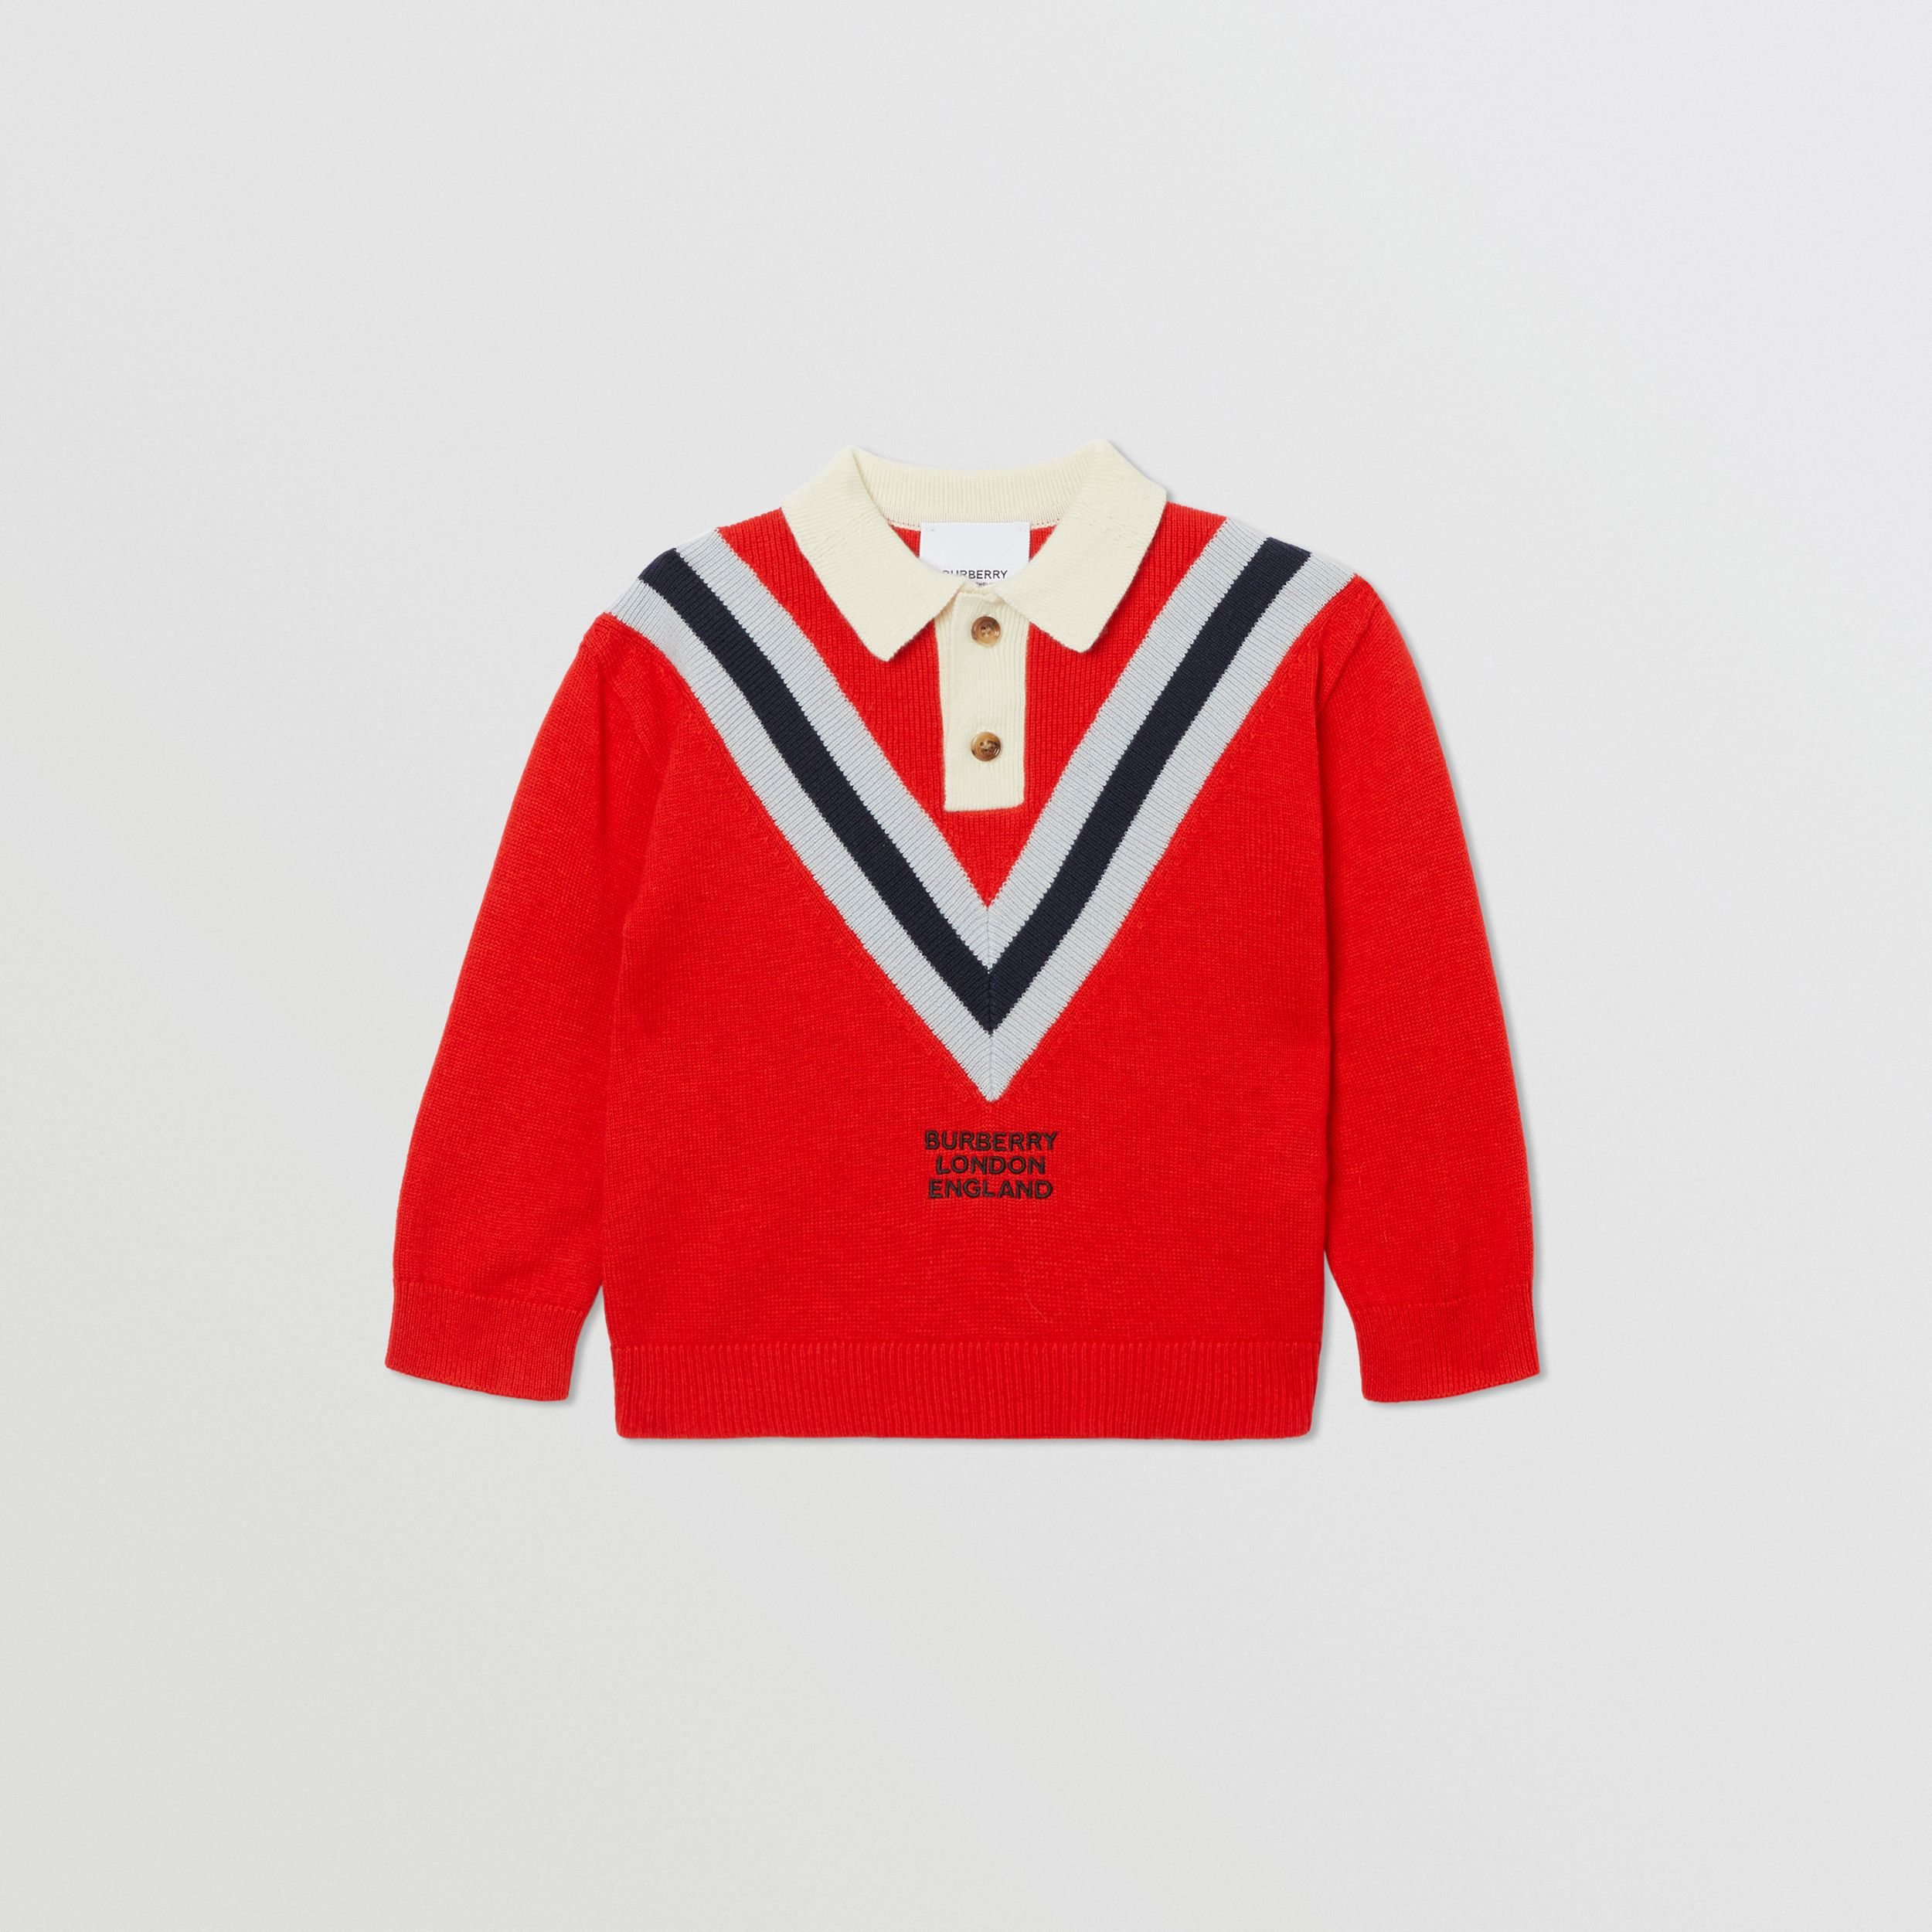 Long-sleeve Knit Cashmere Cotton Polo Shirt in Bright Red - Children | Burberry - 1